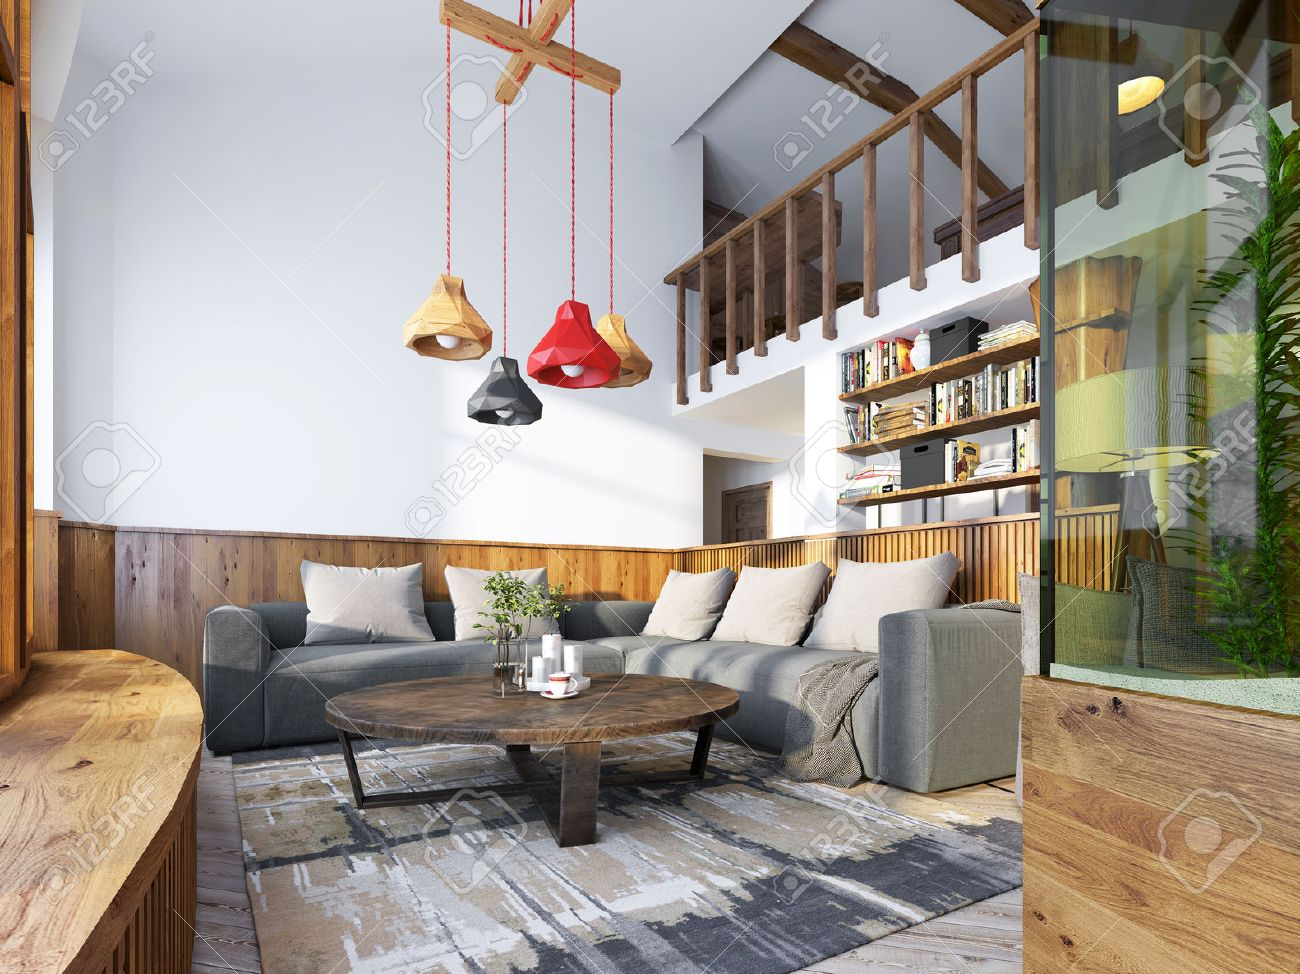 Merveilleux Modern Living Room In A Loft Style. Living Room With Corner Sofa And Wall  With